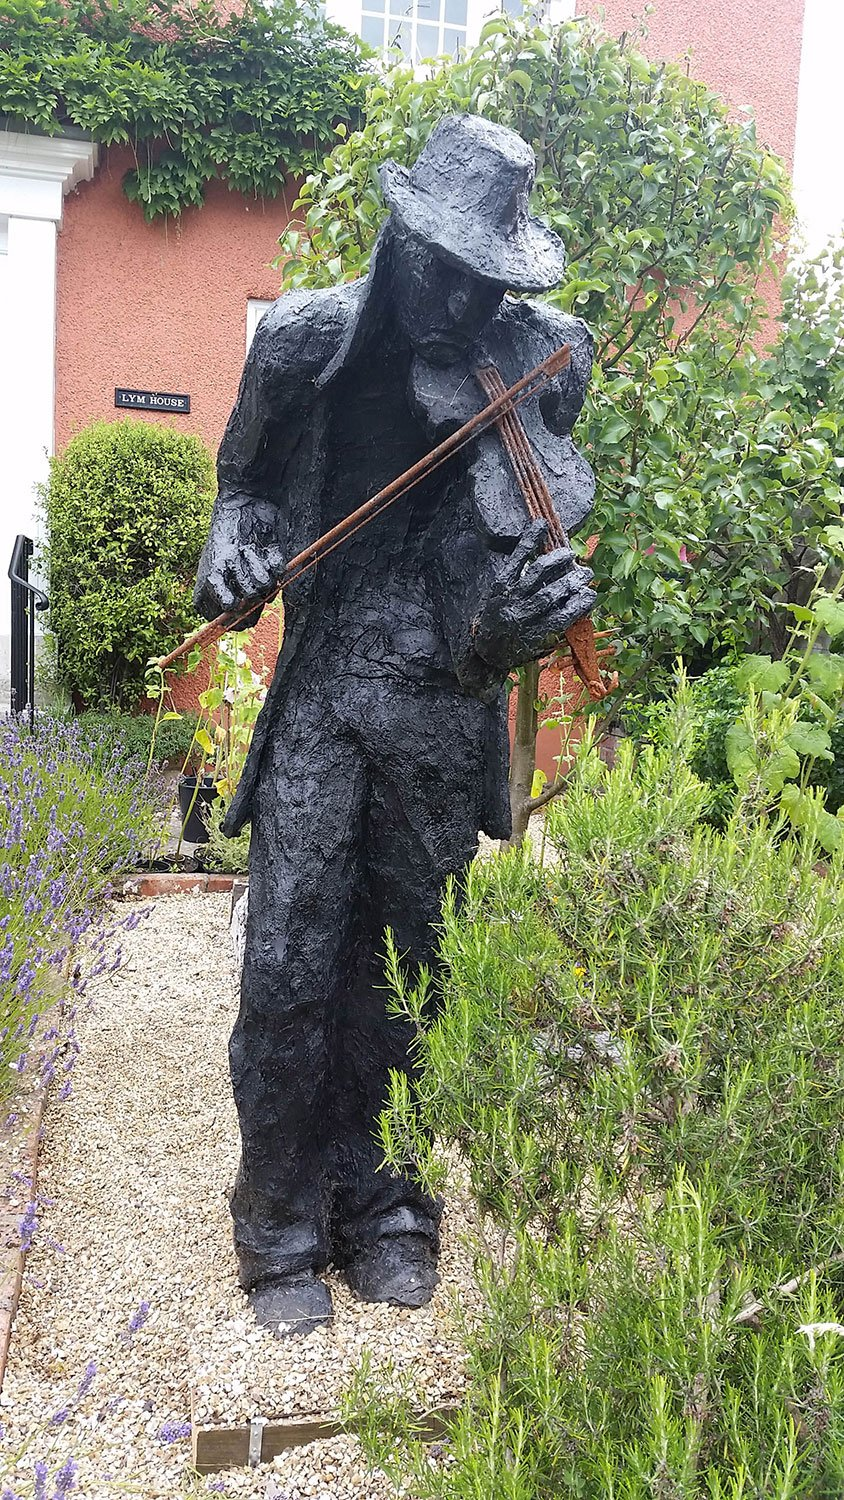 Fiddler Sculpture Greta Berlin